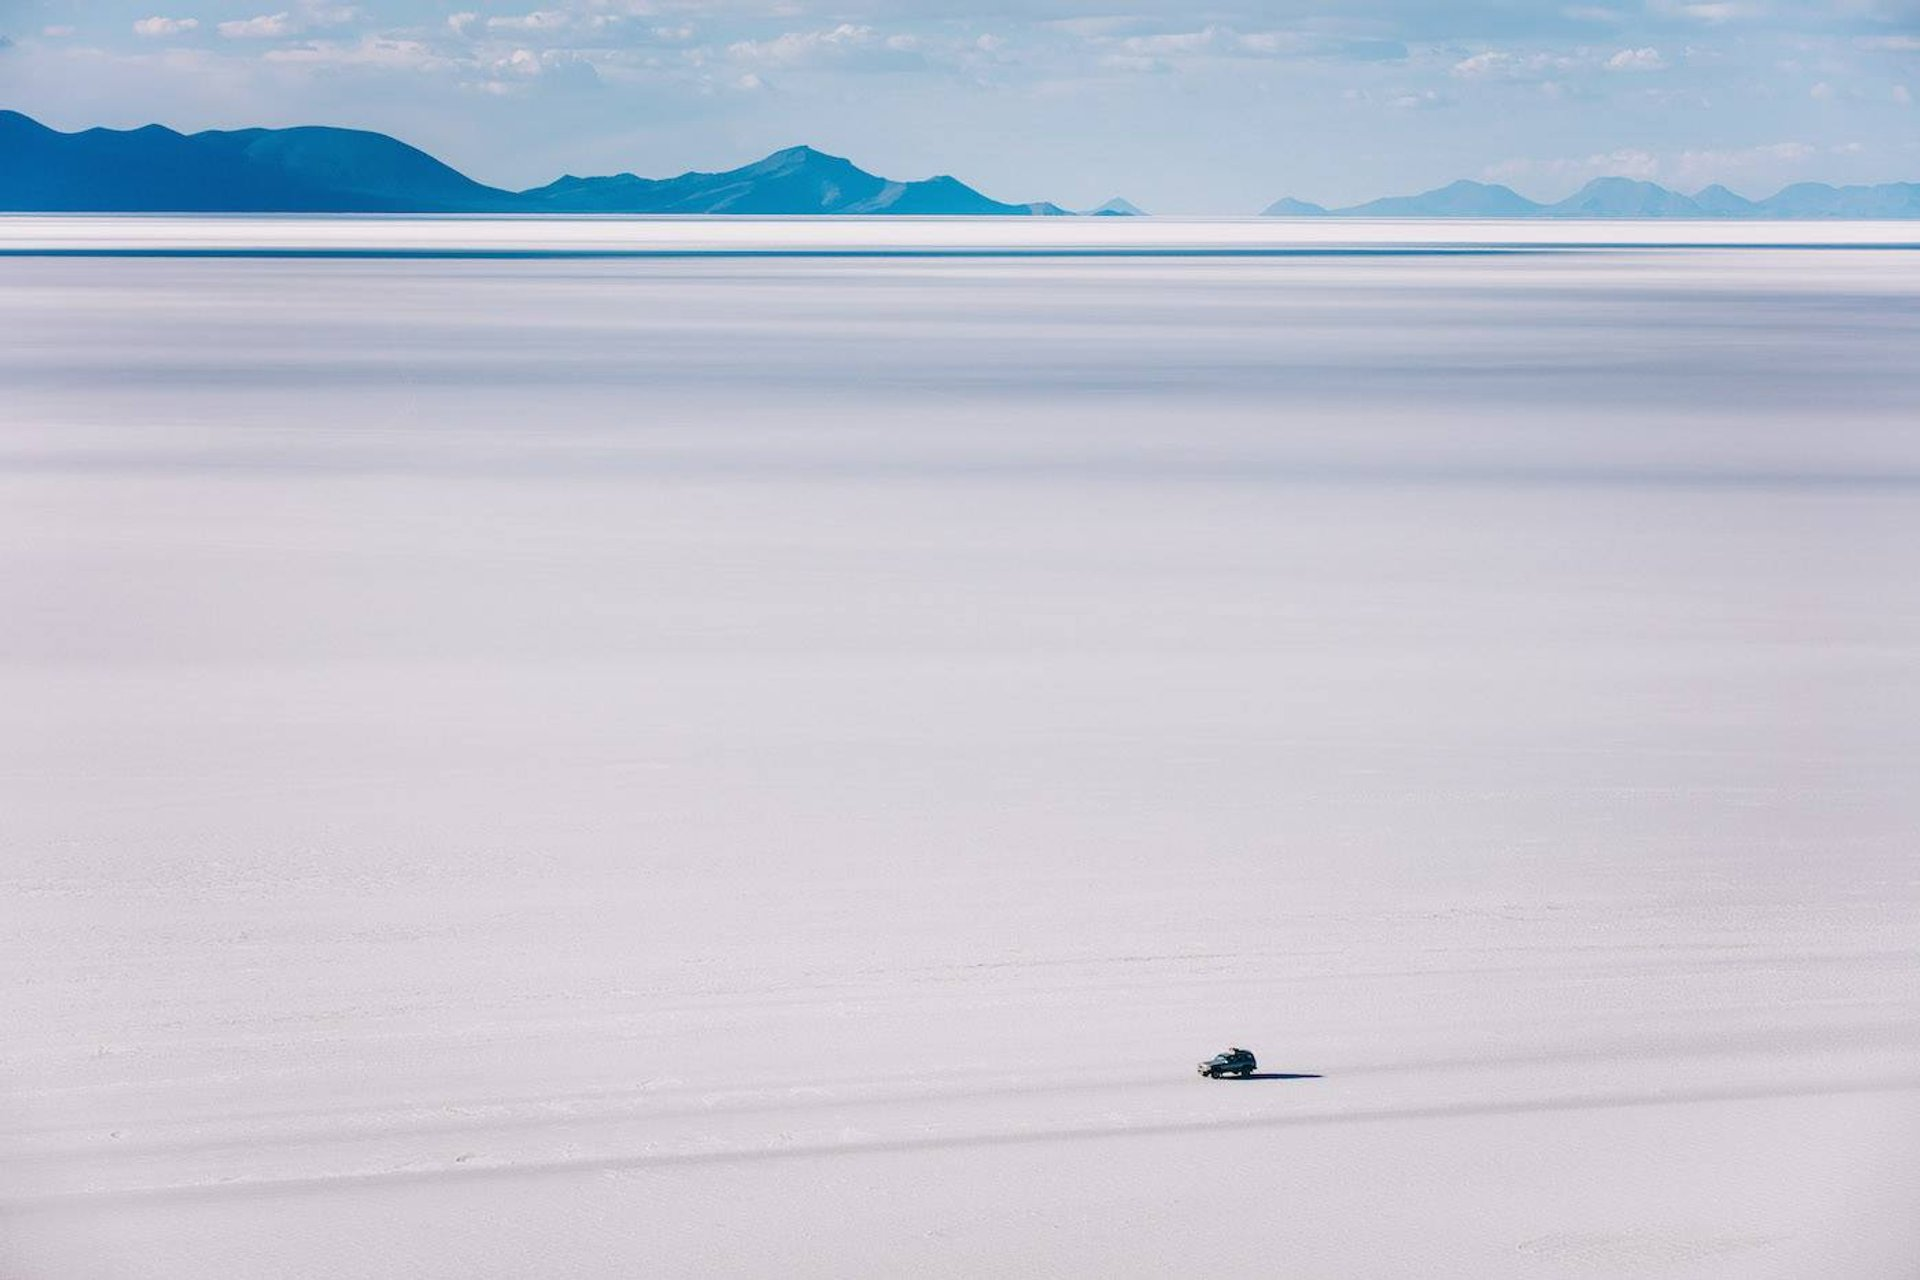 Walk the Salar de Uyuni Salt Flats in Bolivia - Best Season 2019